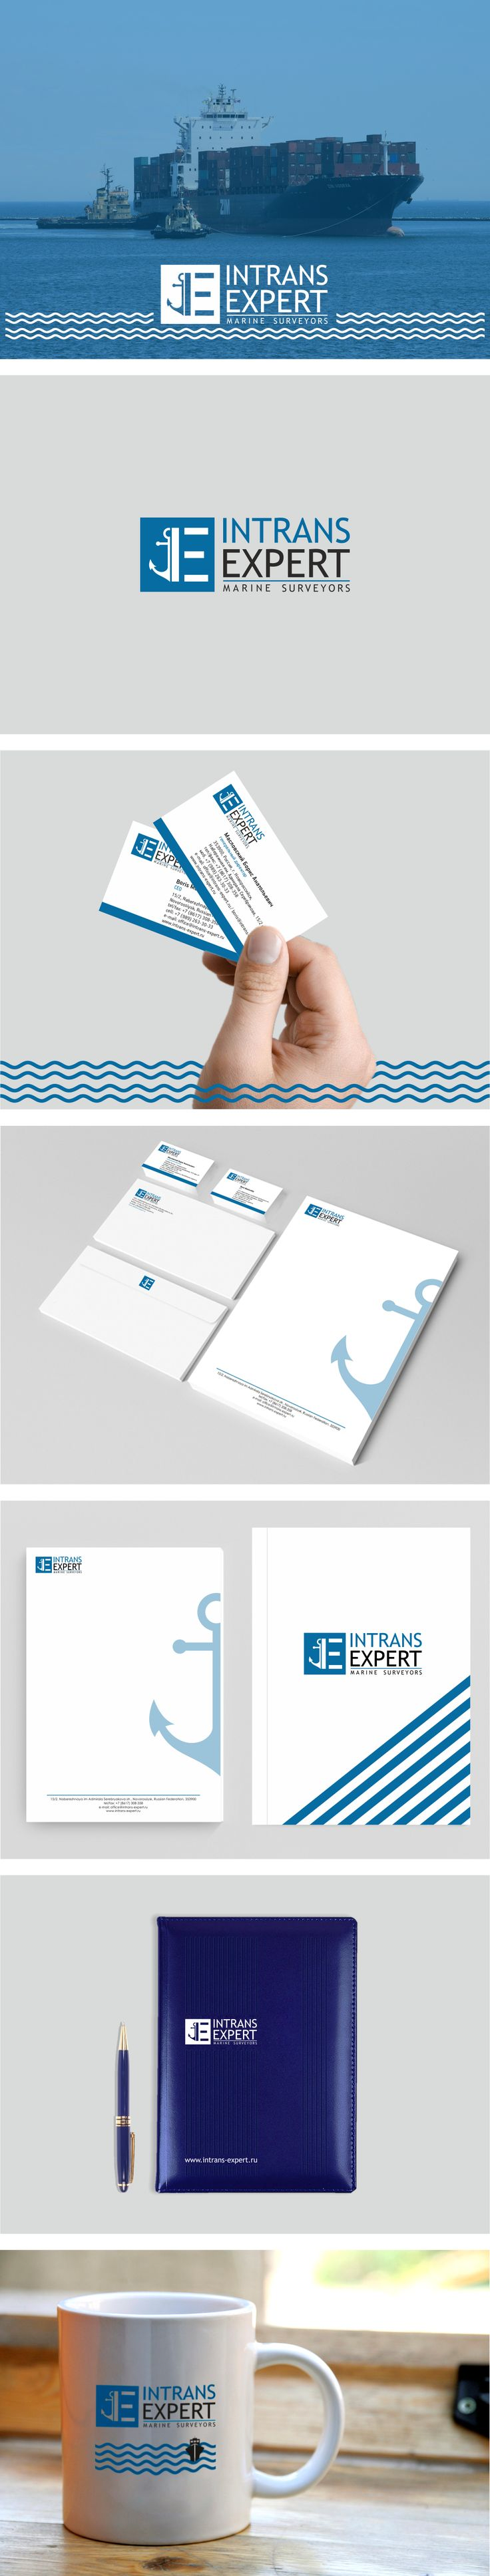 Intrans Expert. Identity Branding. Business Card. Letterhead.